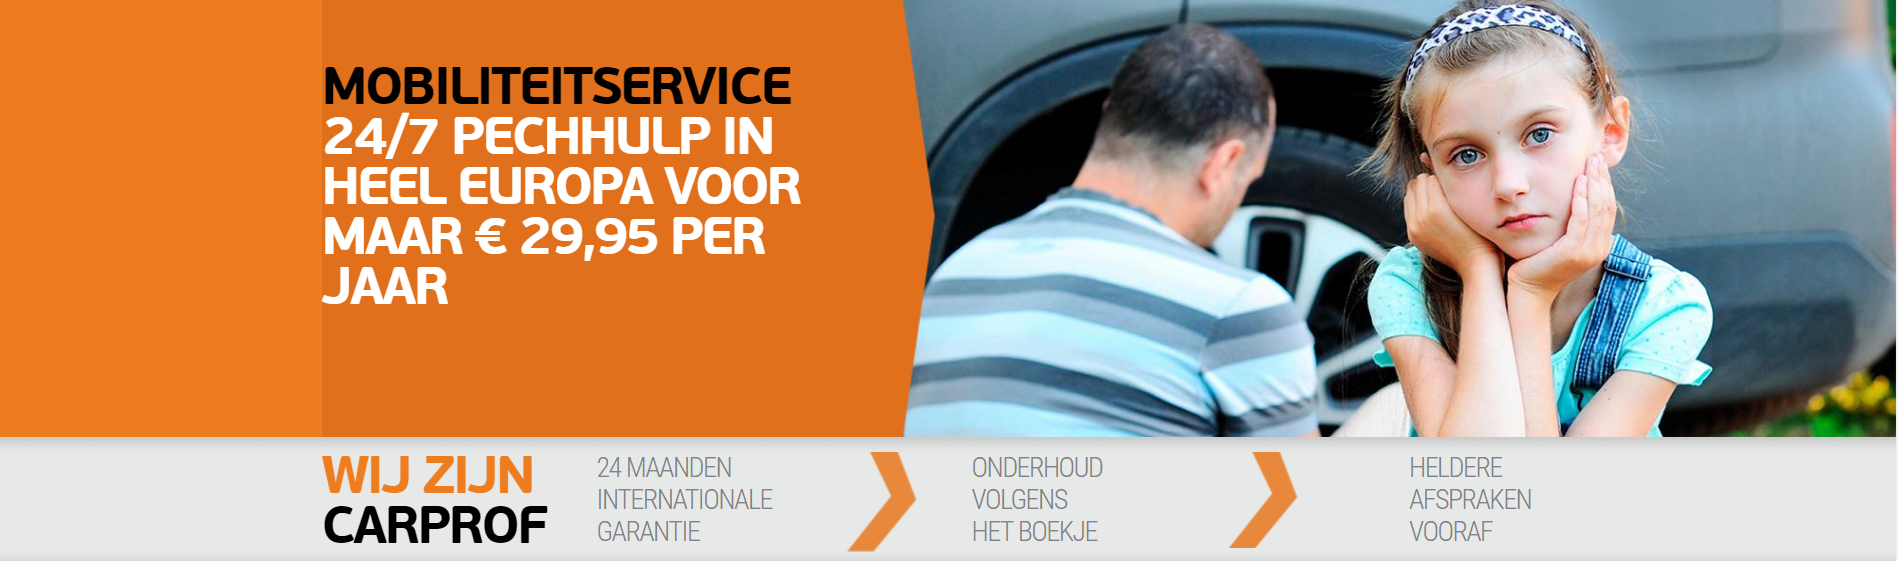 CP Mobiliteitservice